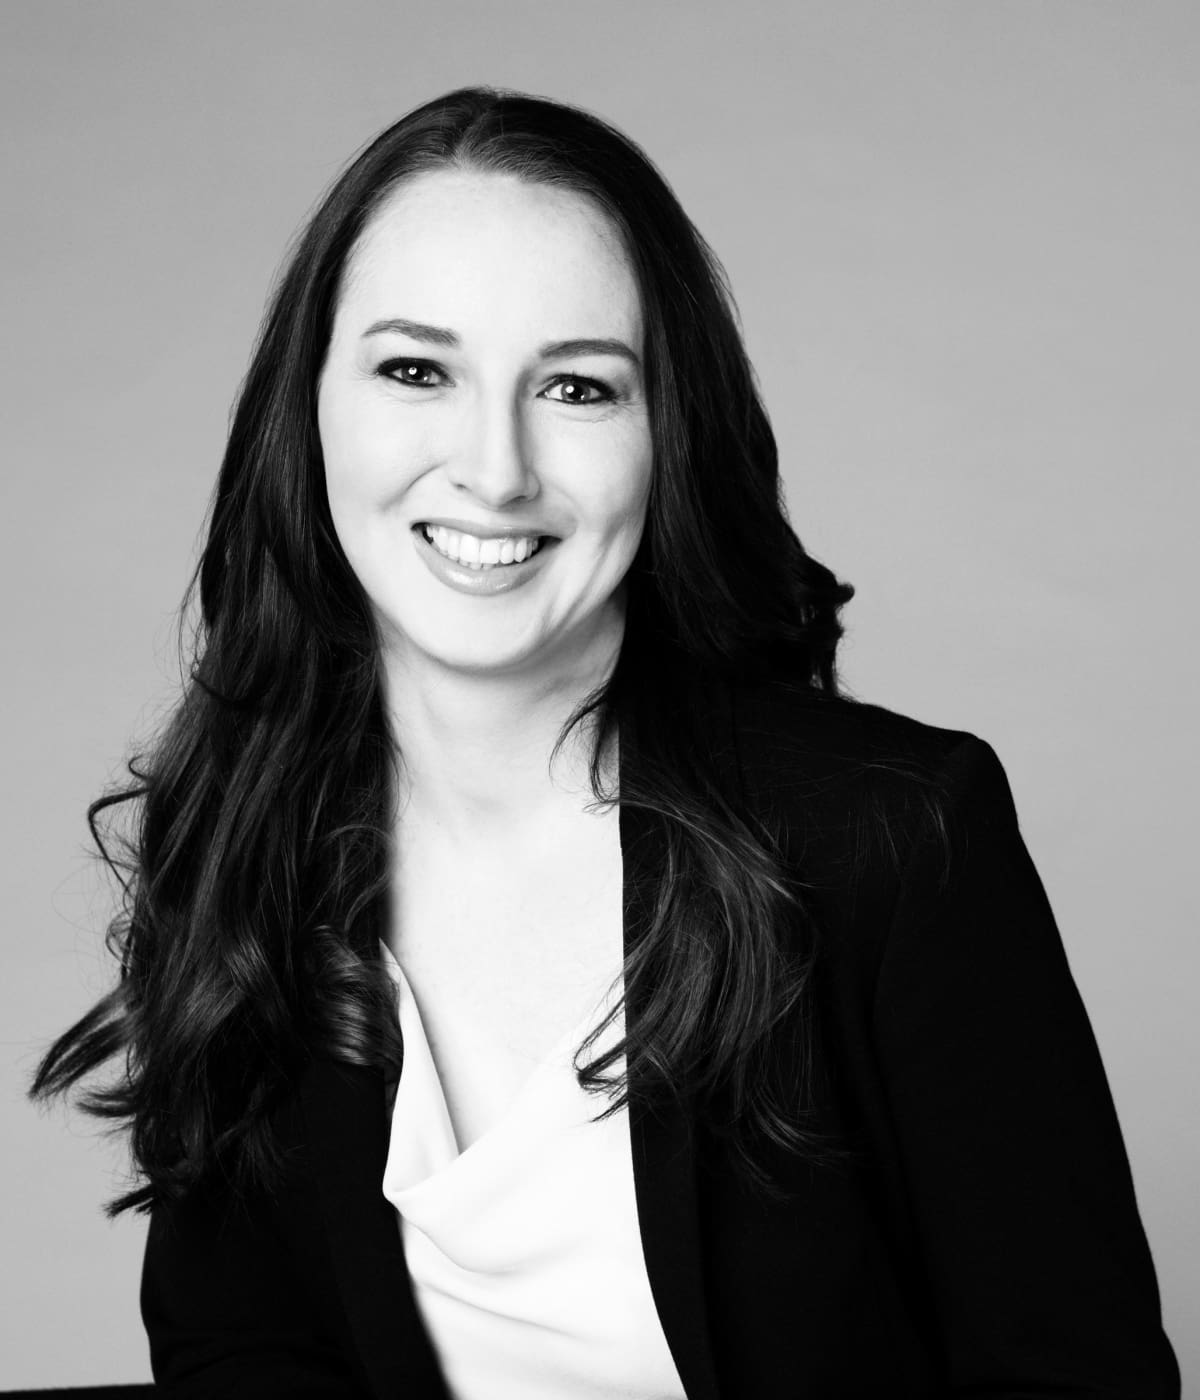 Danielle haines of Overland Property Group